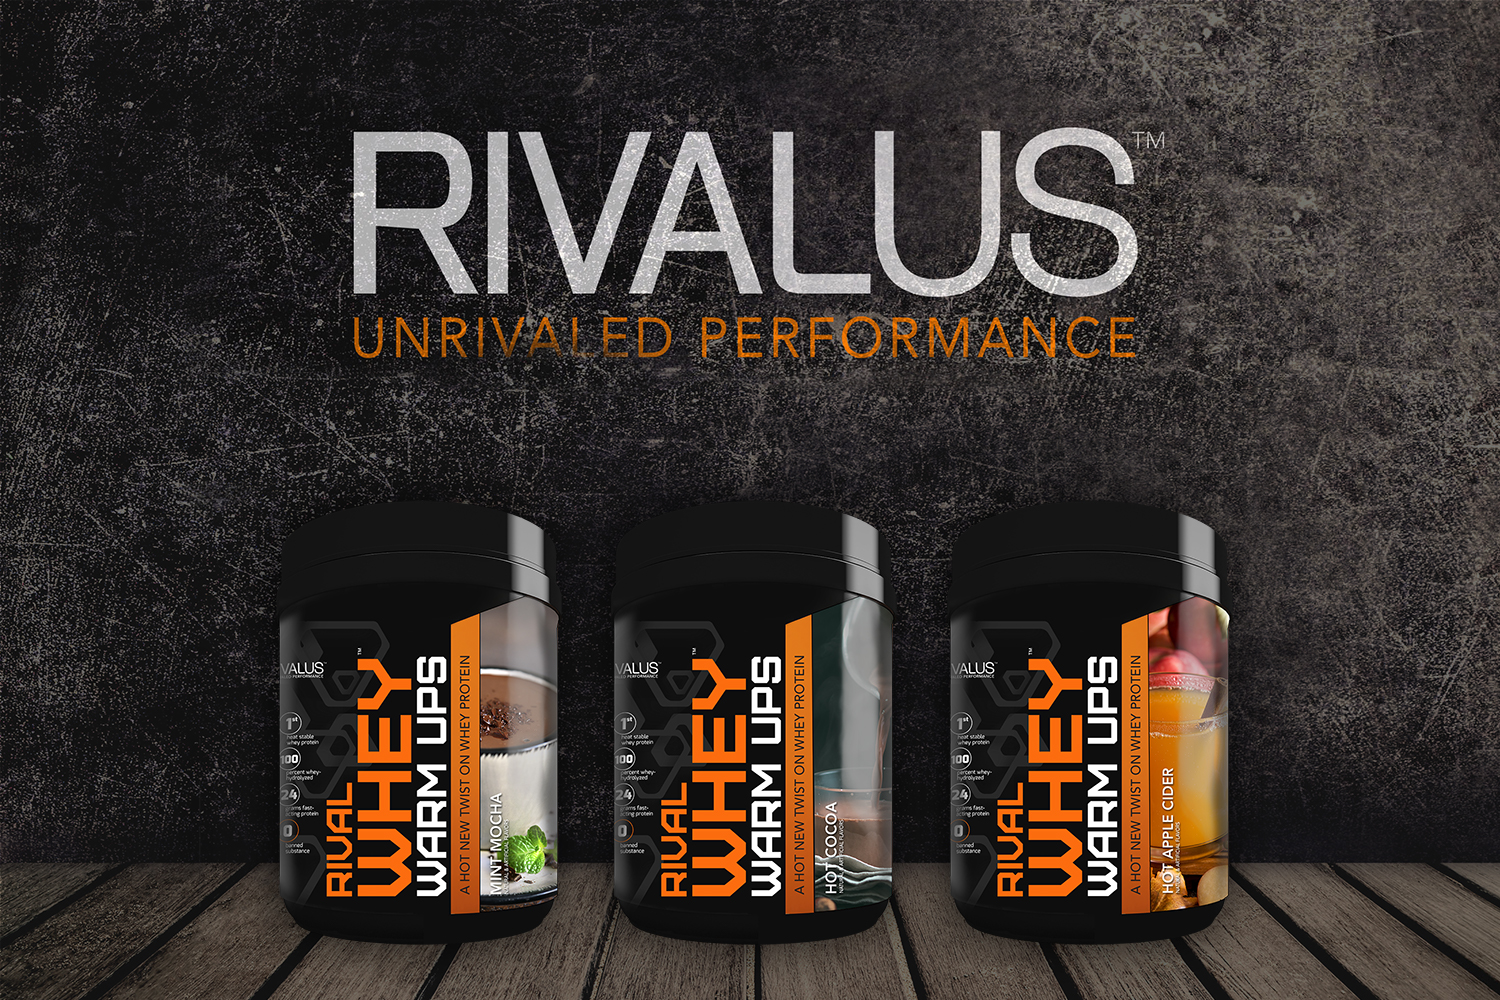 Rivalus to Introduce HOT New Whey Protein at 2019 Arnold Sports Festival